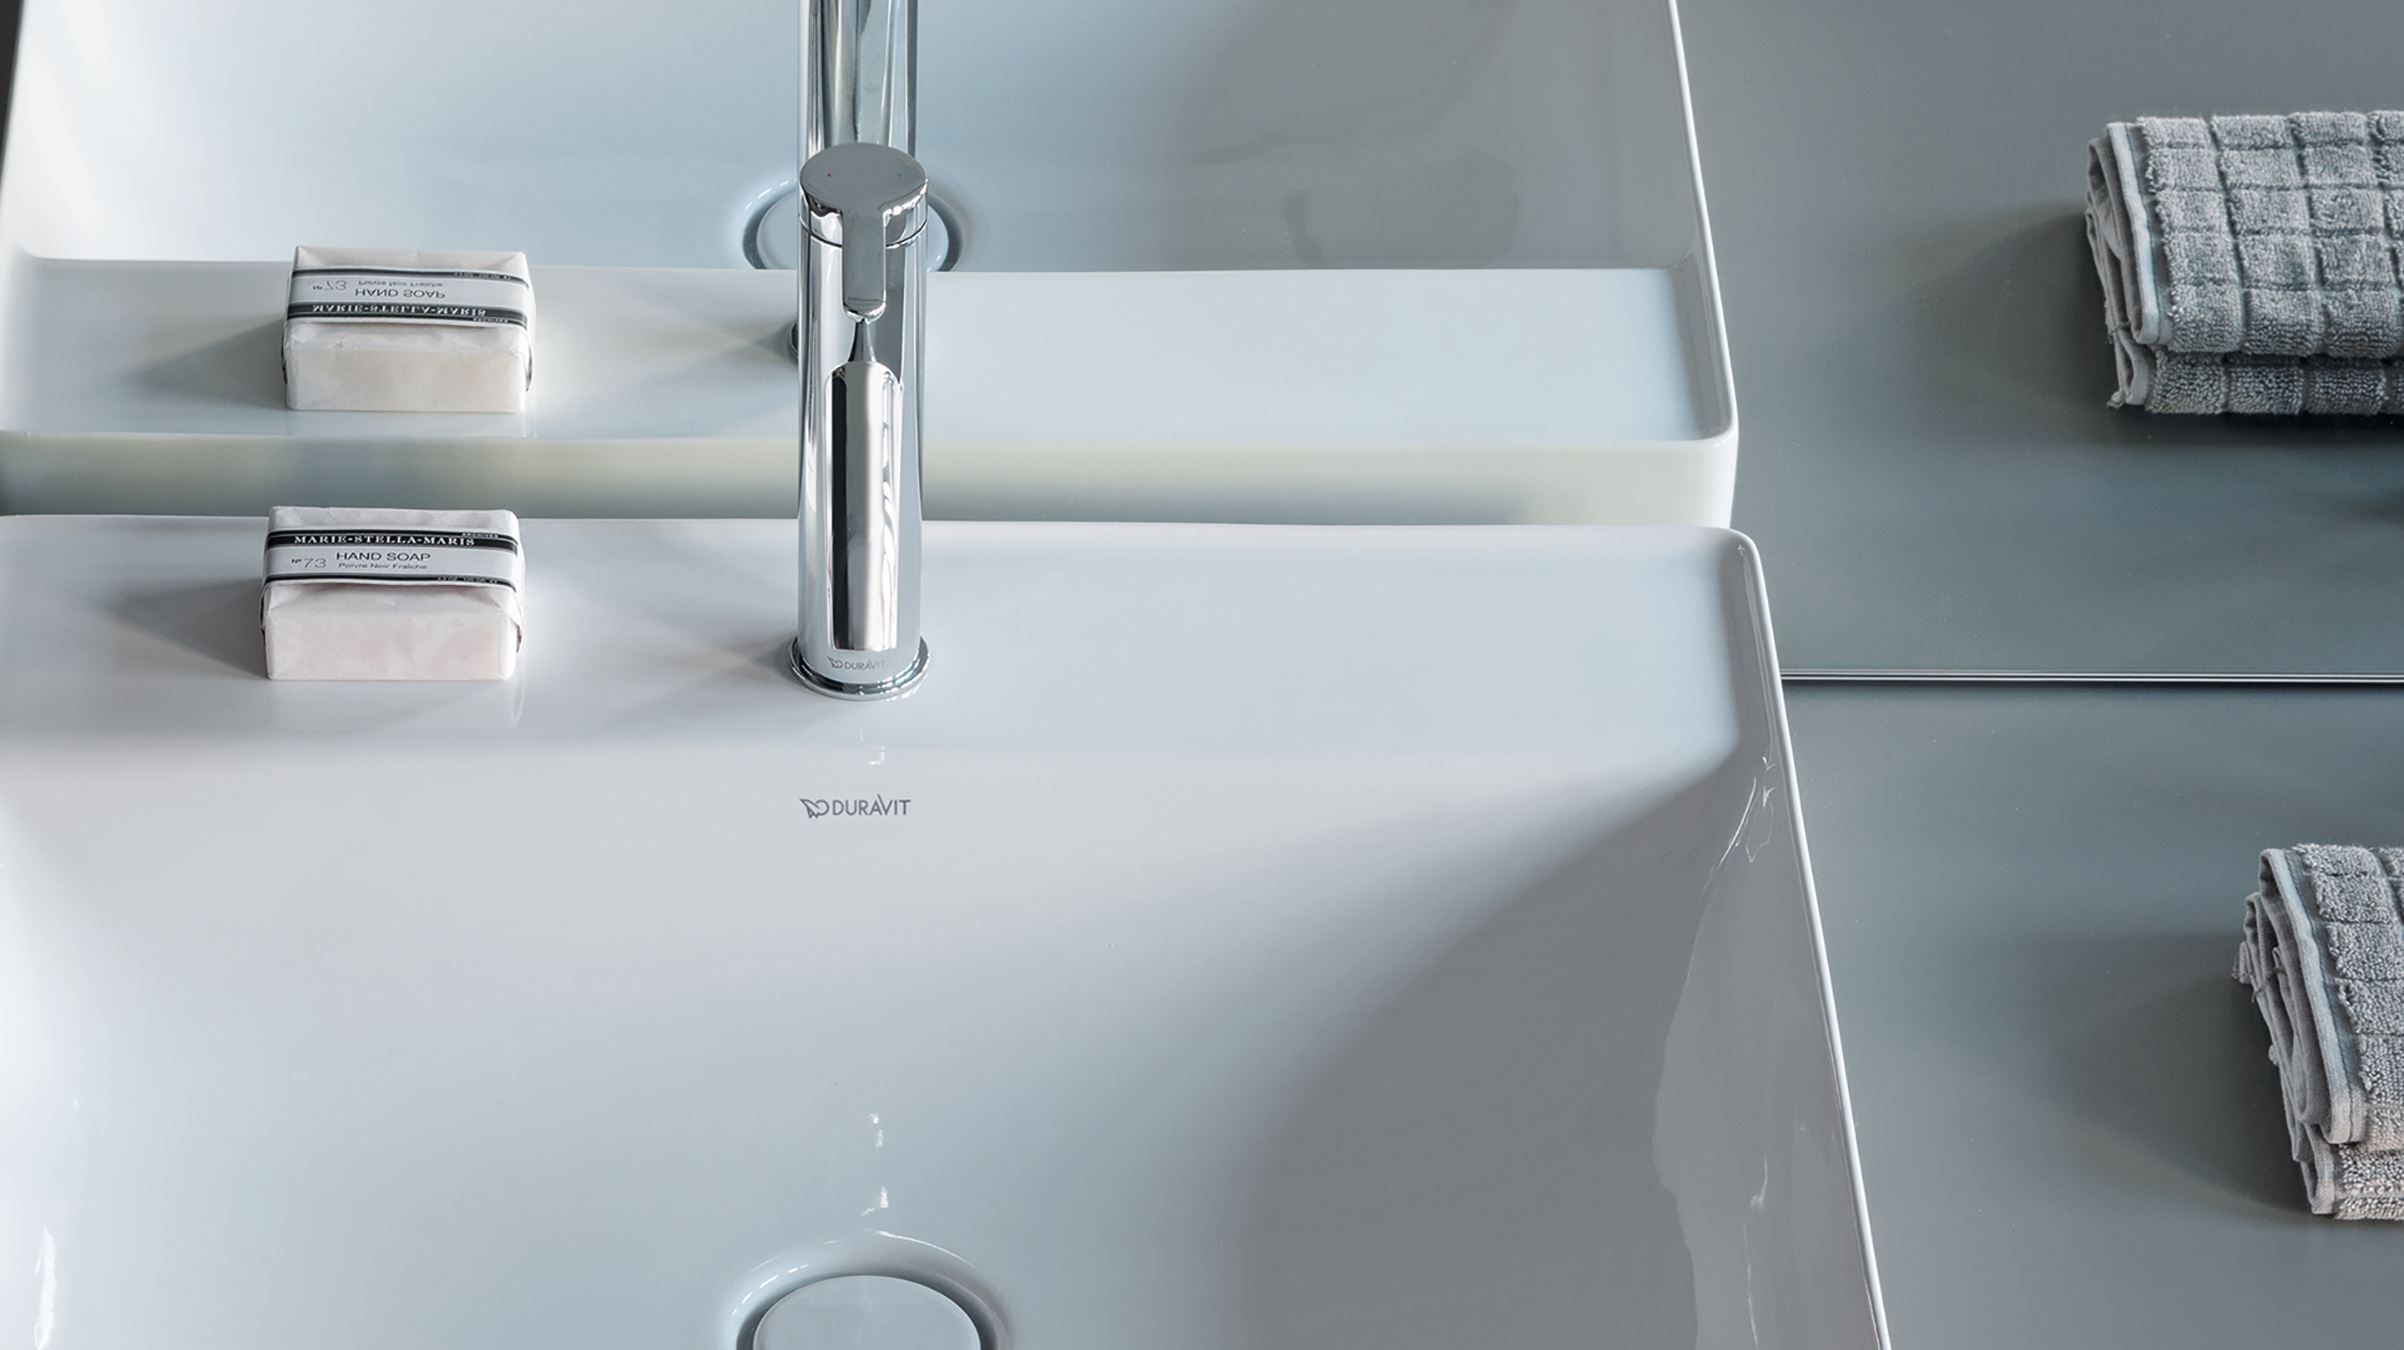 C1-by-Kurt-Merki-Jr_Duravit_01.jpg